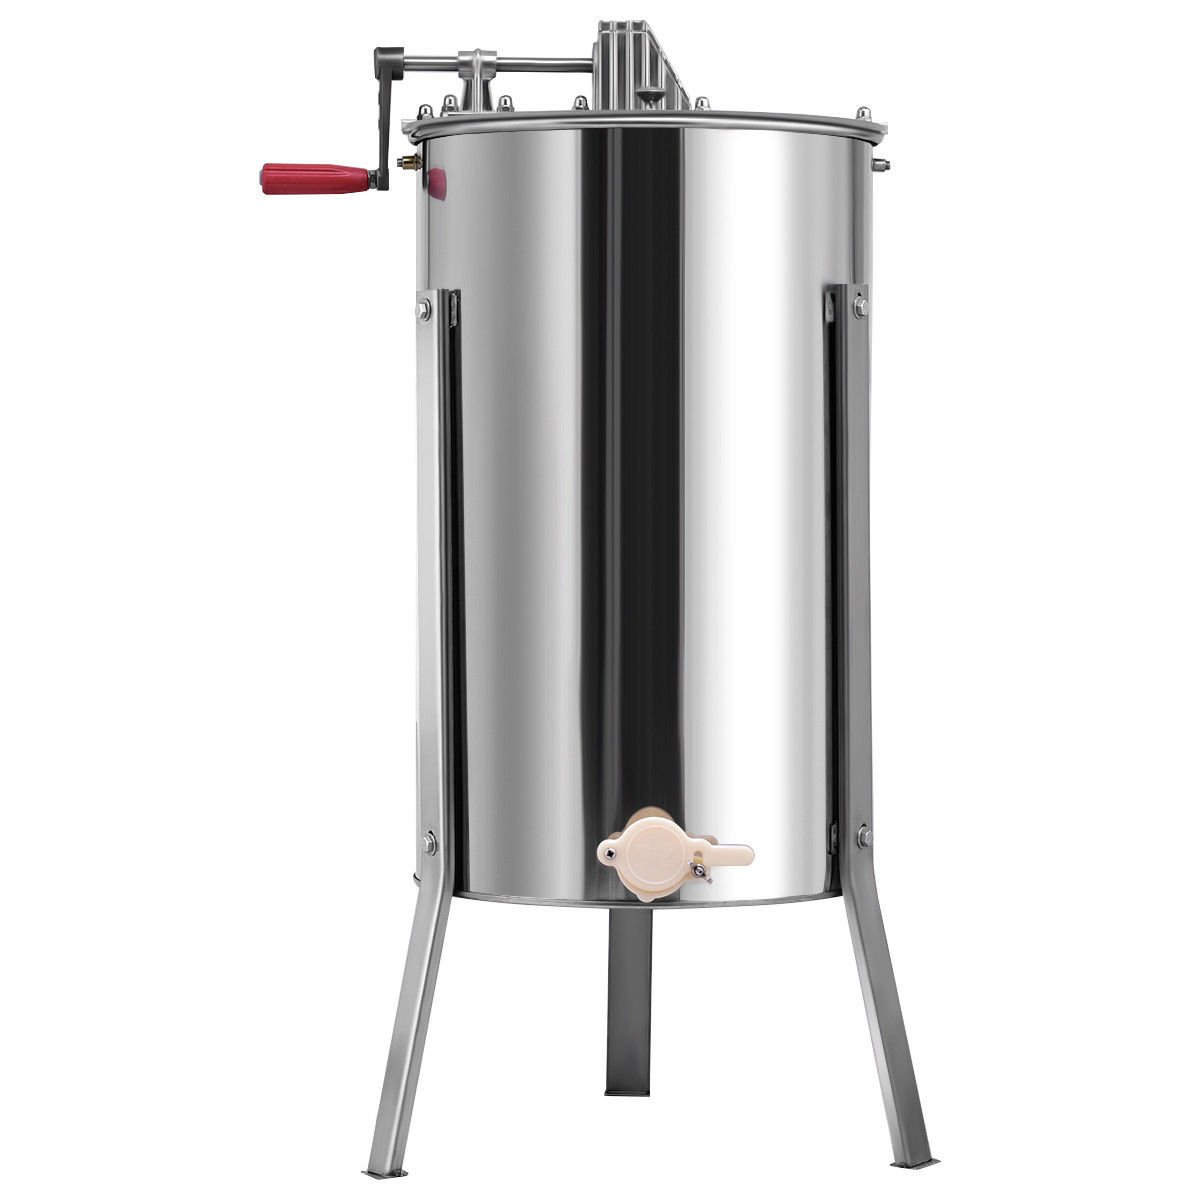 Goplus Large Two-Frame Extractor